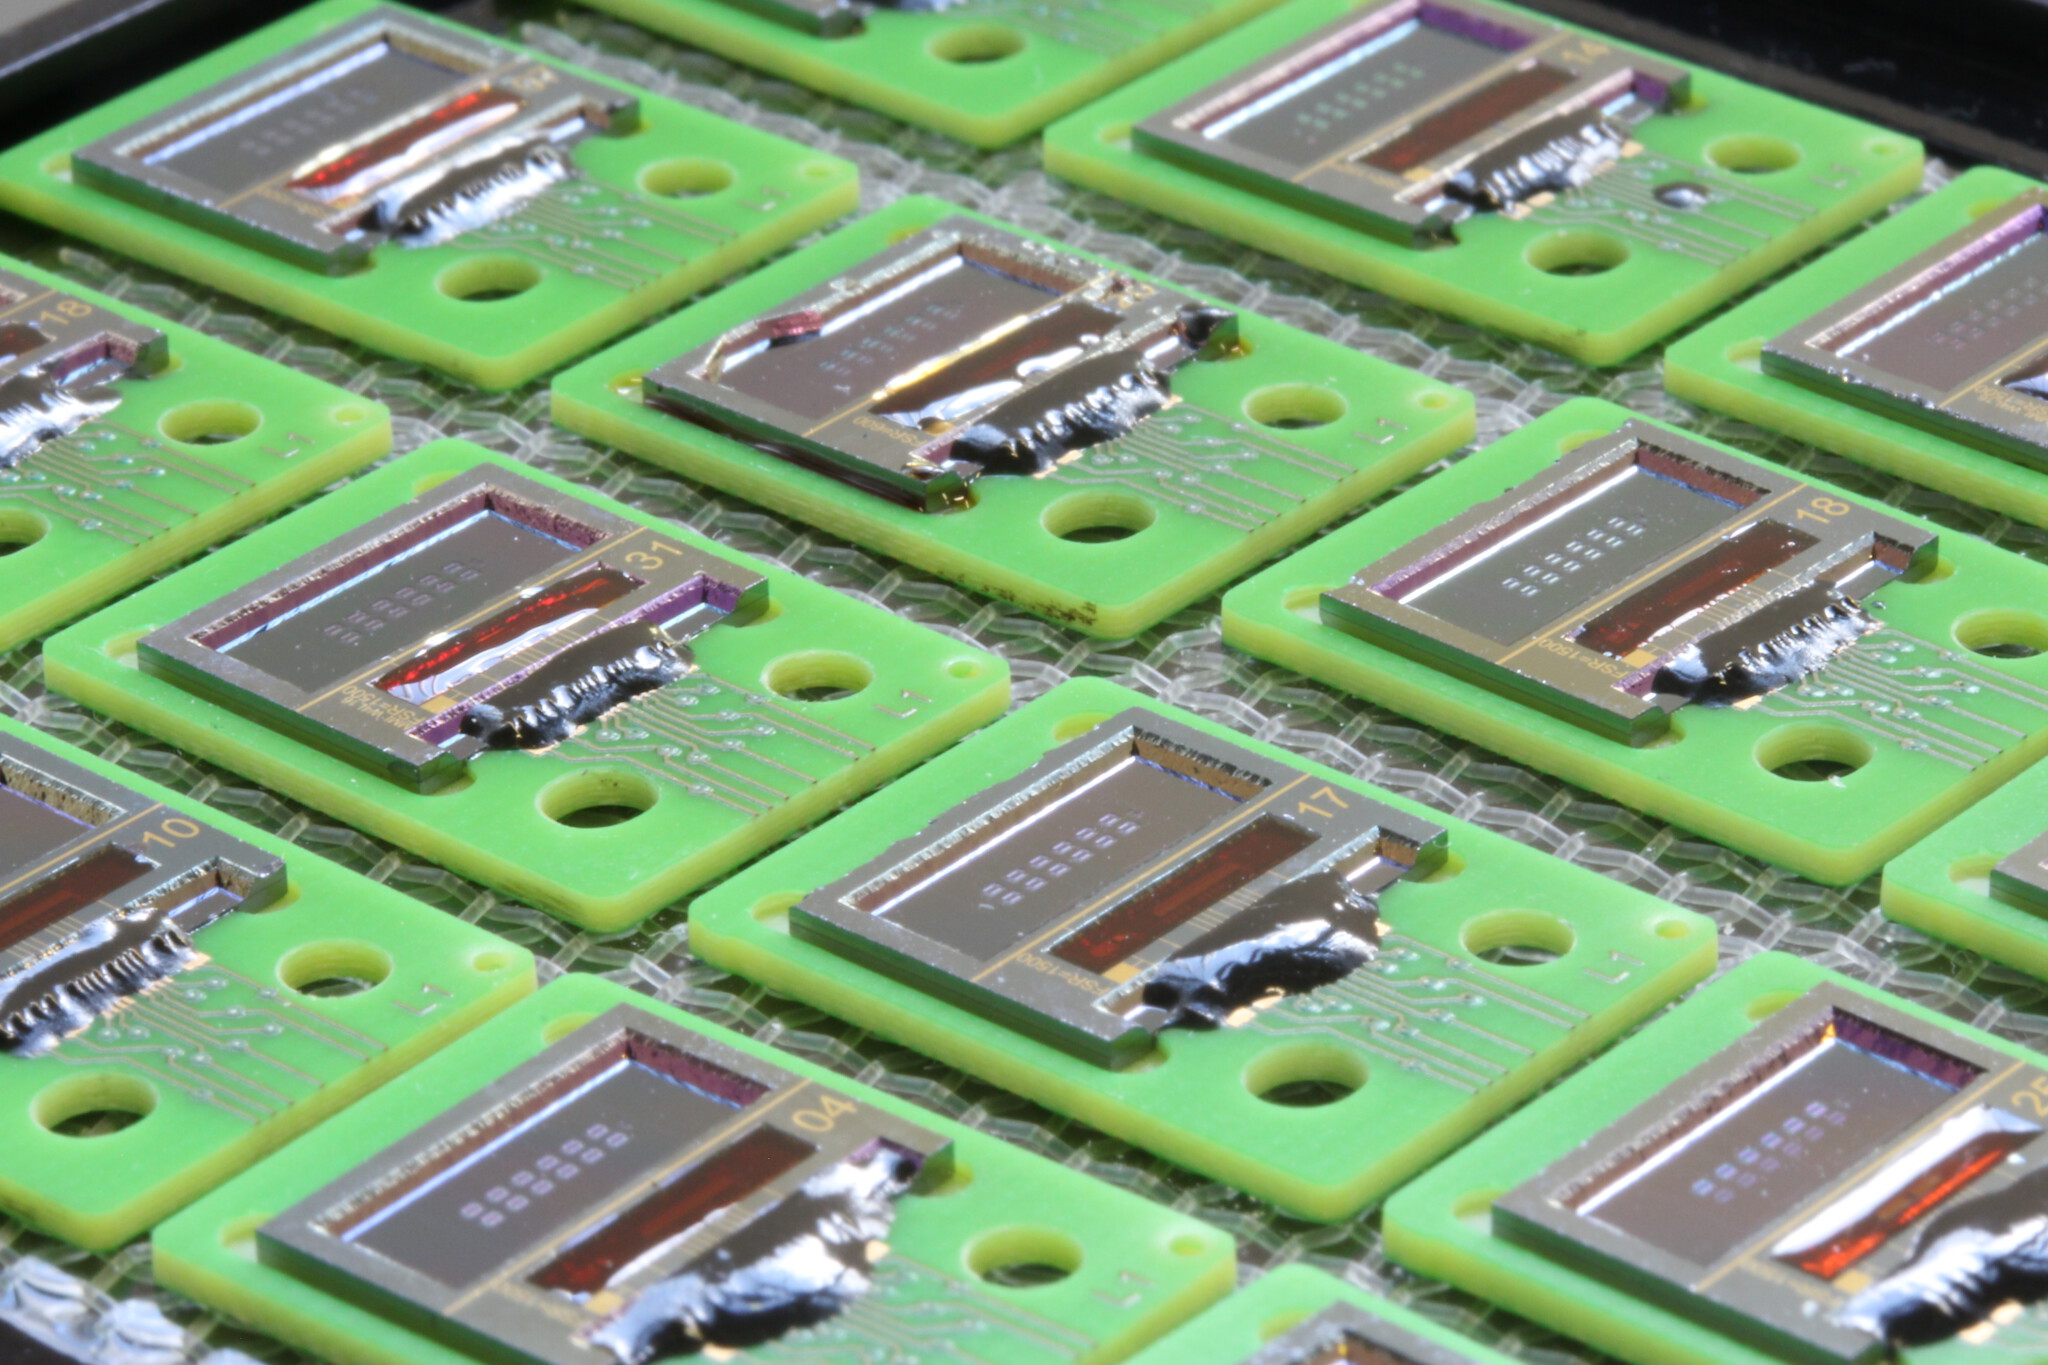 integrated photonic biosensor chips for early cancer diagnostics and covid-19 detection